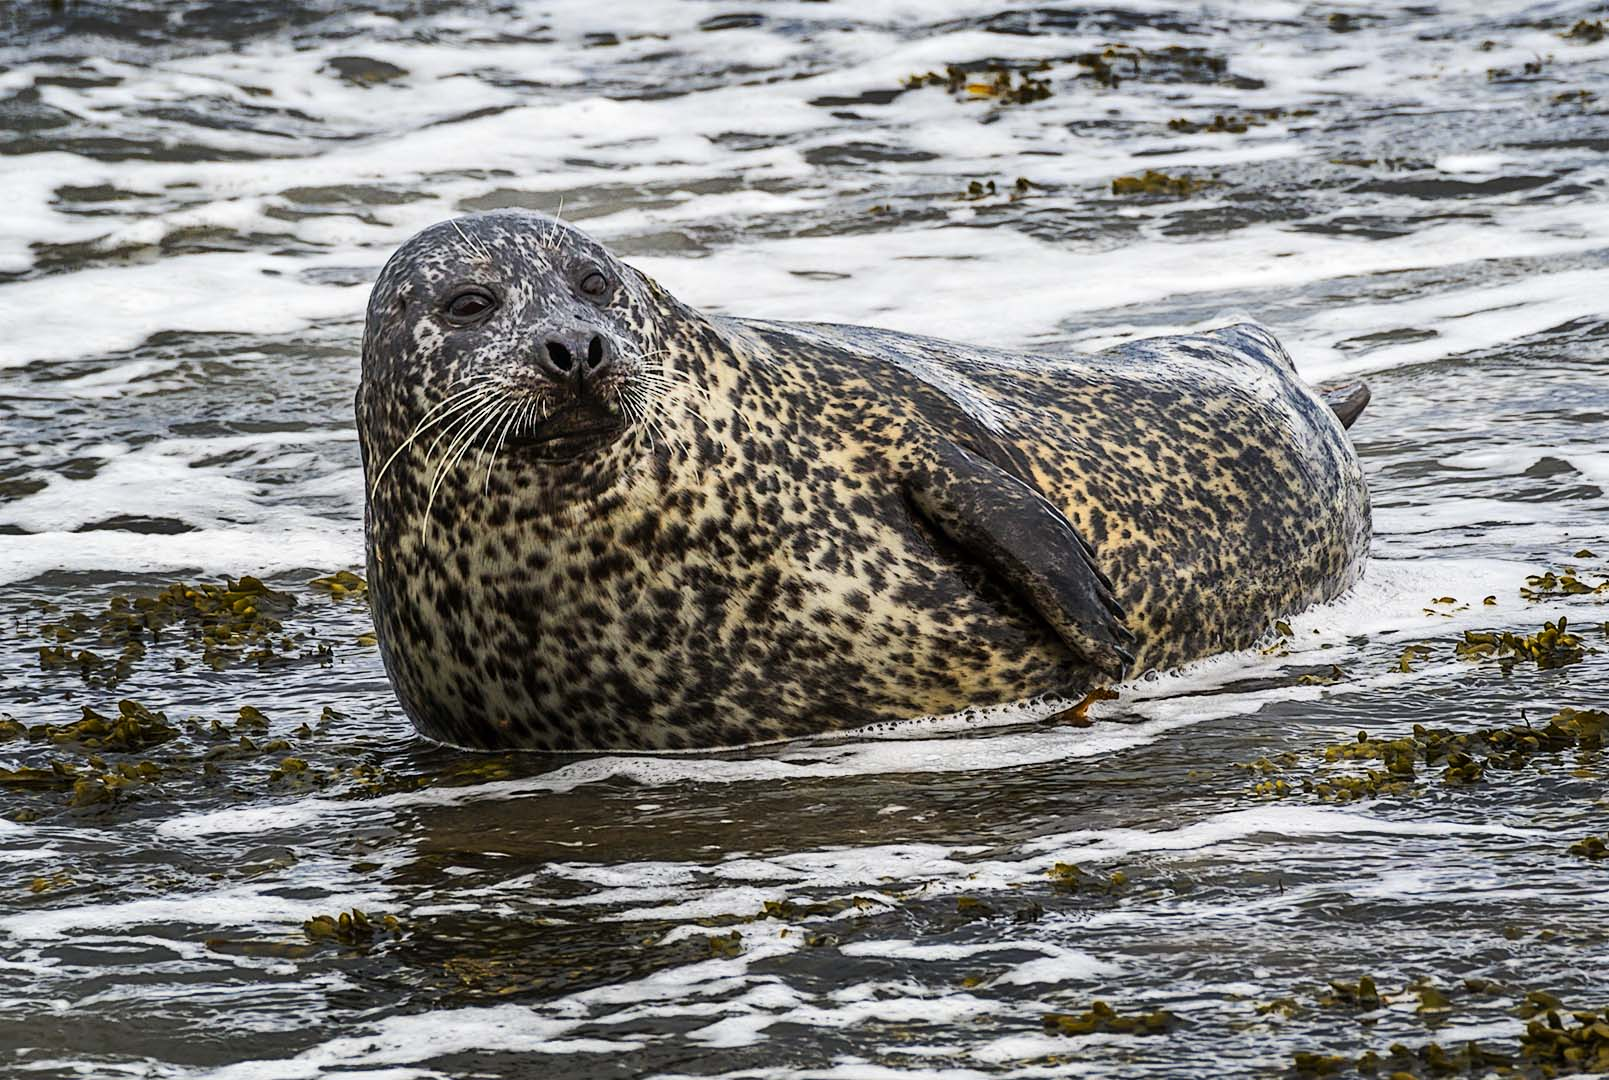 20170423_0435-Common Seal.jpg